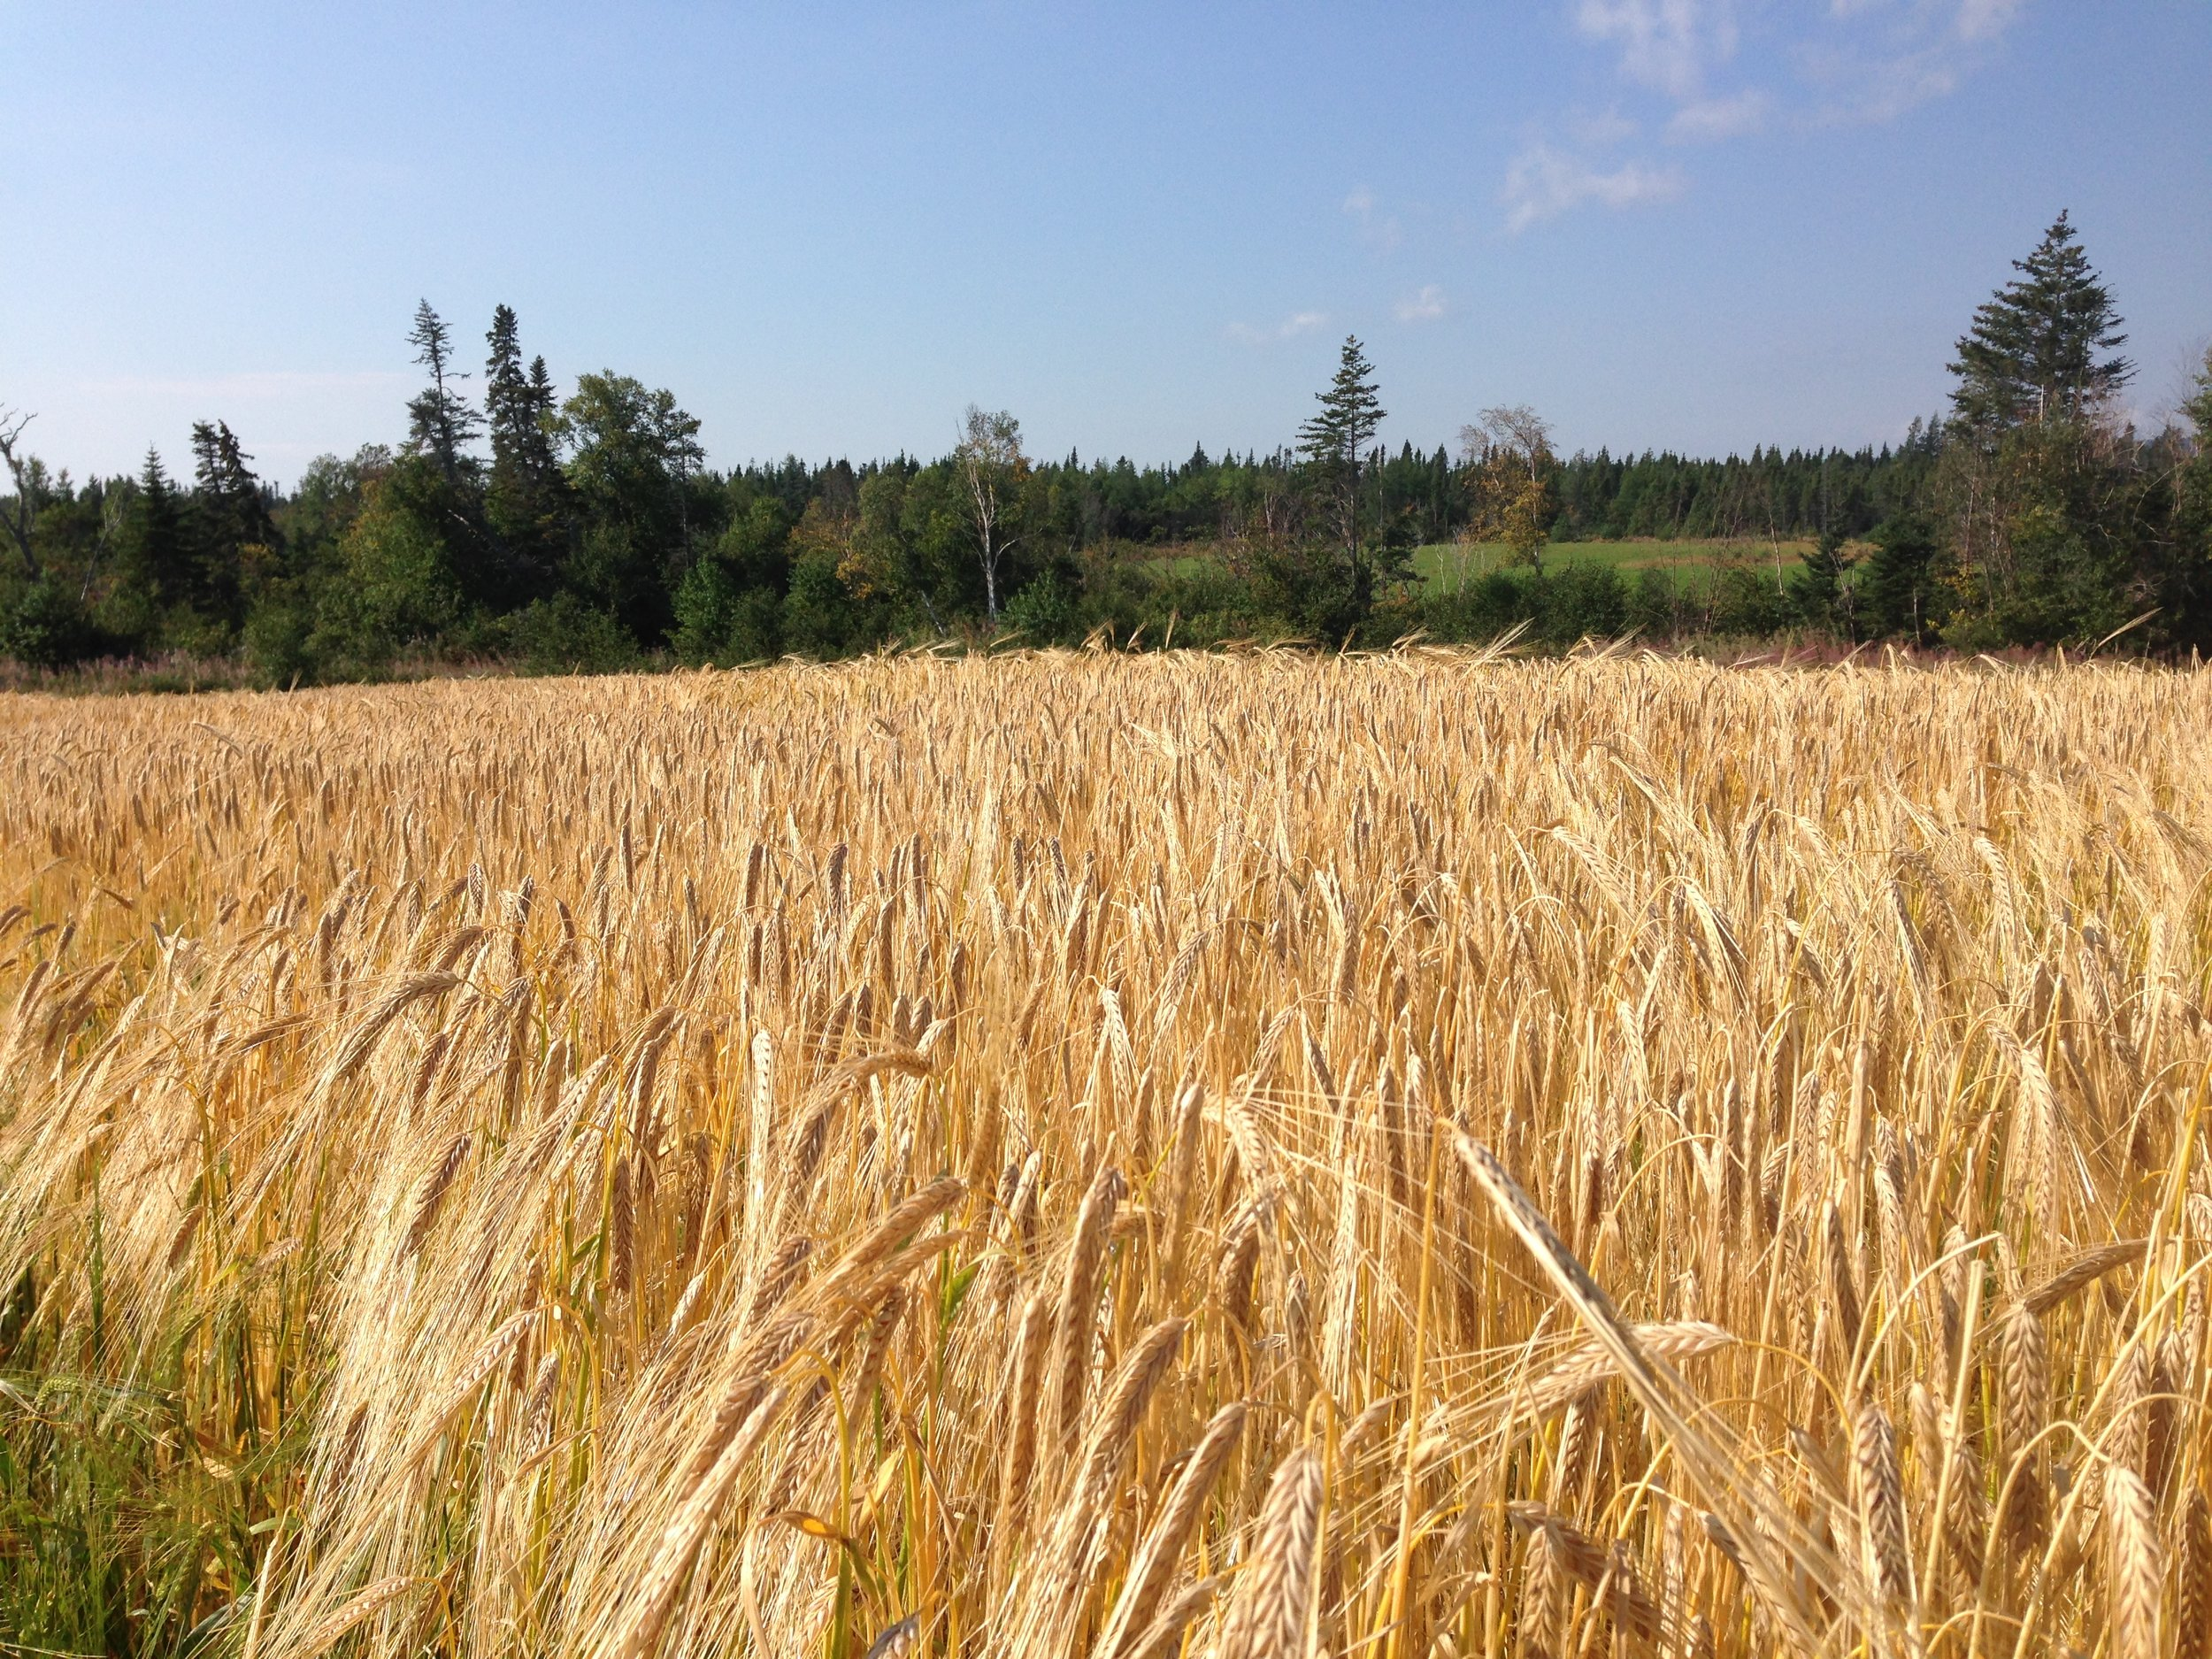 In 2016, 15 acres of Cerveza barley was planted as a feed crop at Larch Grove Farm in Cormack, N.L. The small acreage allowed researchers to assess the barley under conventional management in preparation for the malting barley project.